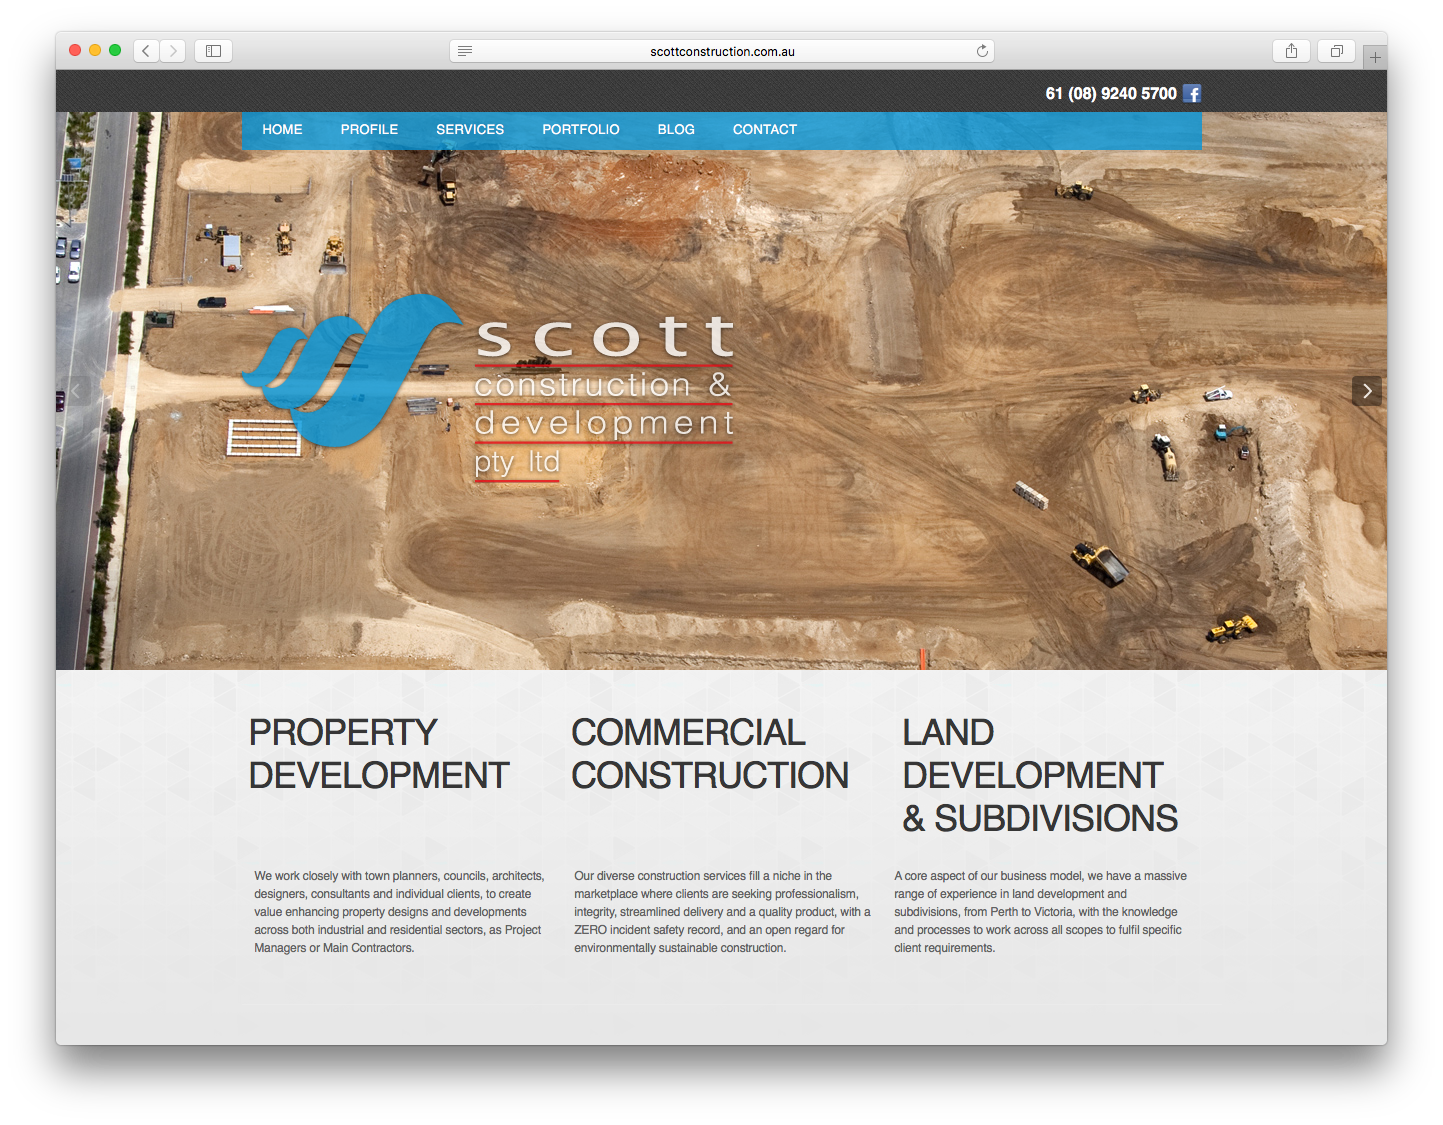 scottconstruction